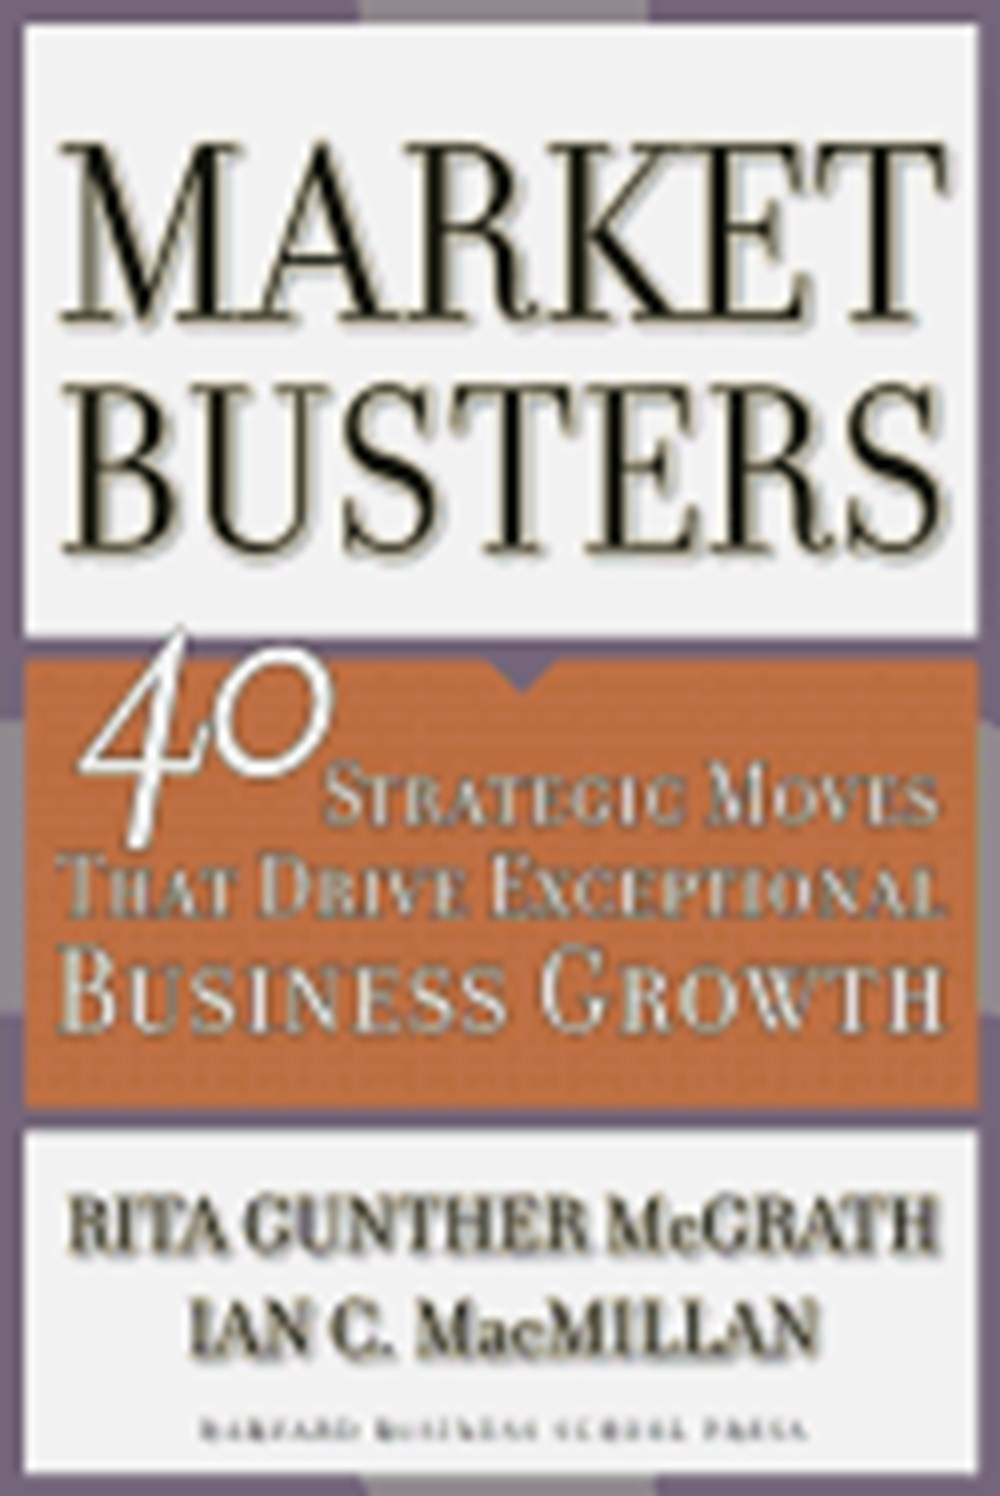 Marketbusters 40 Strategic Moves That Drive Exceptional Business Growth